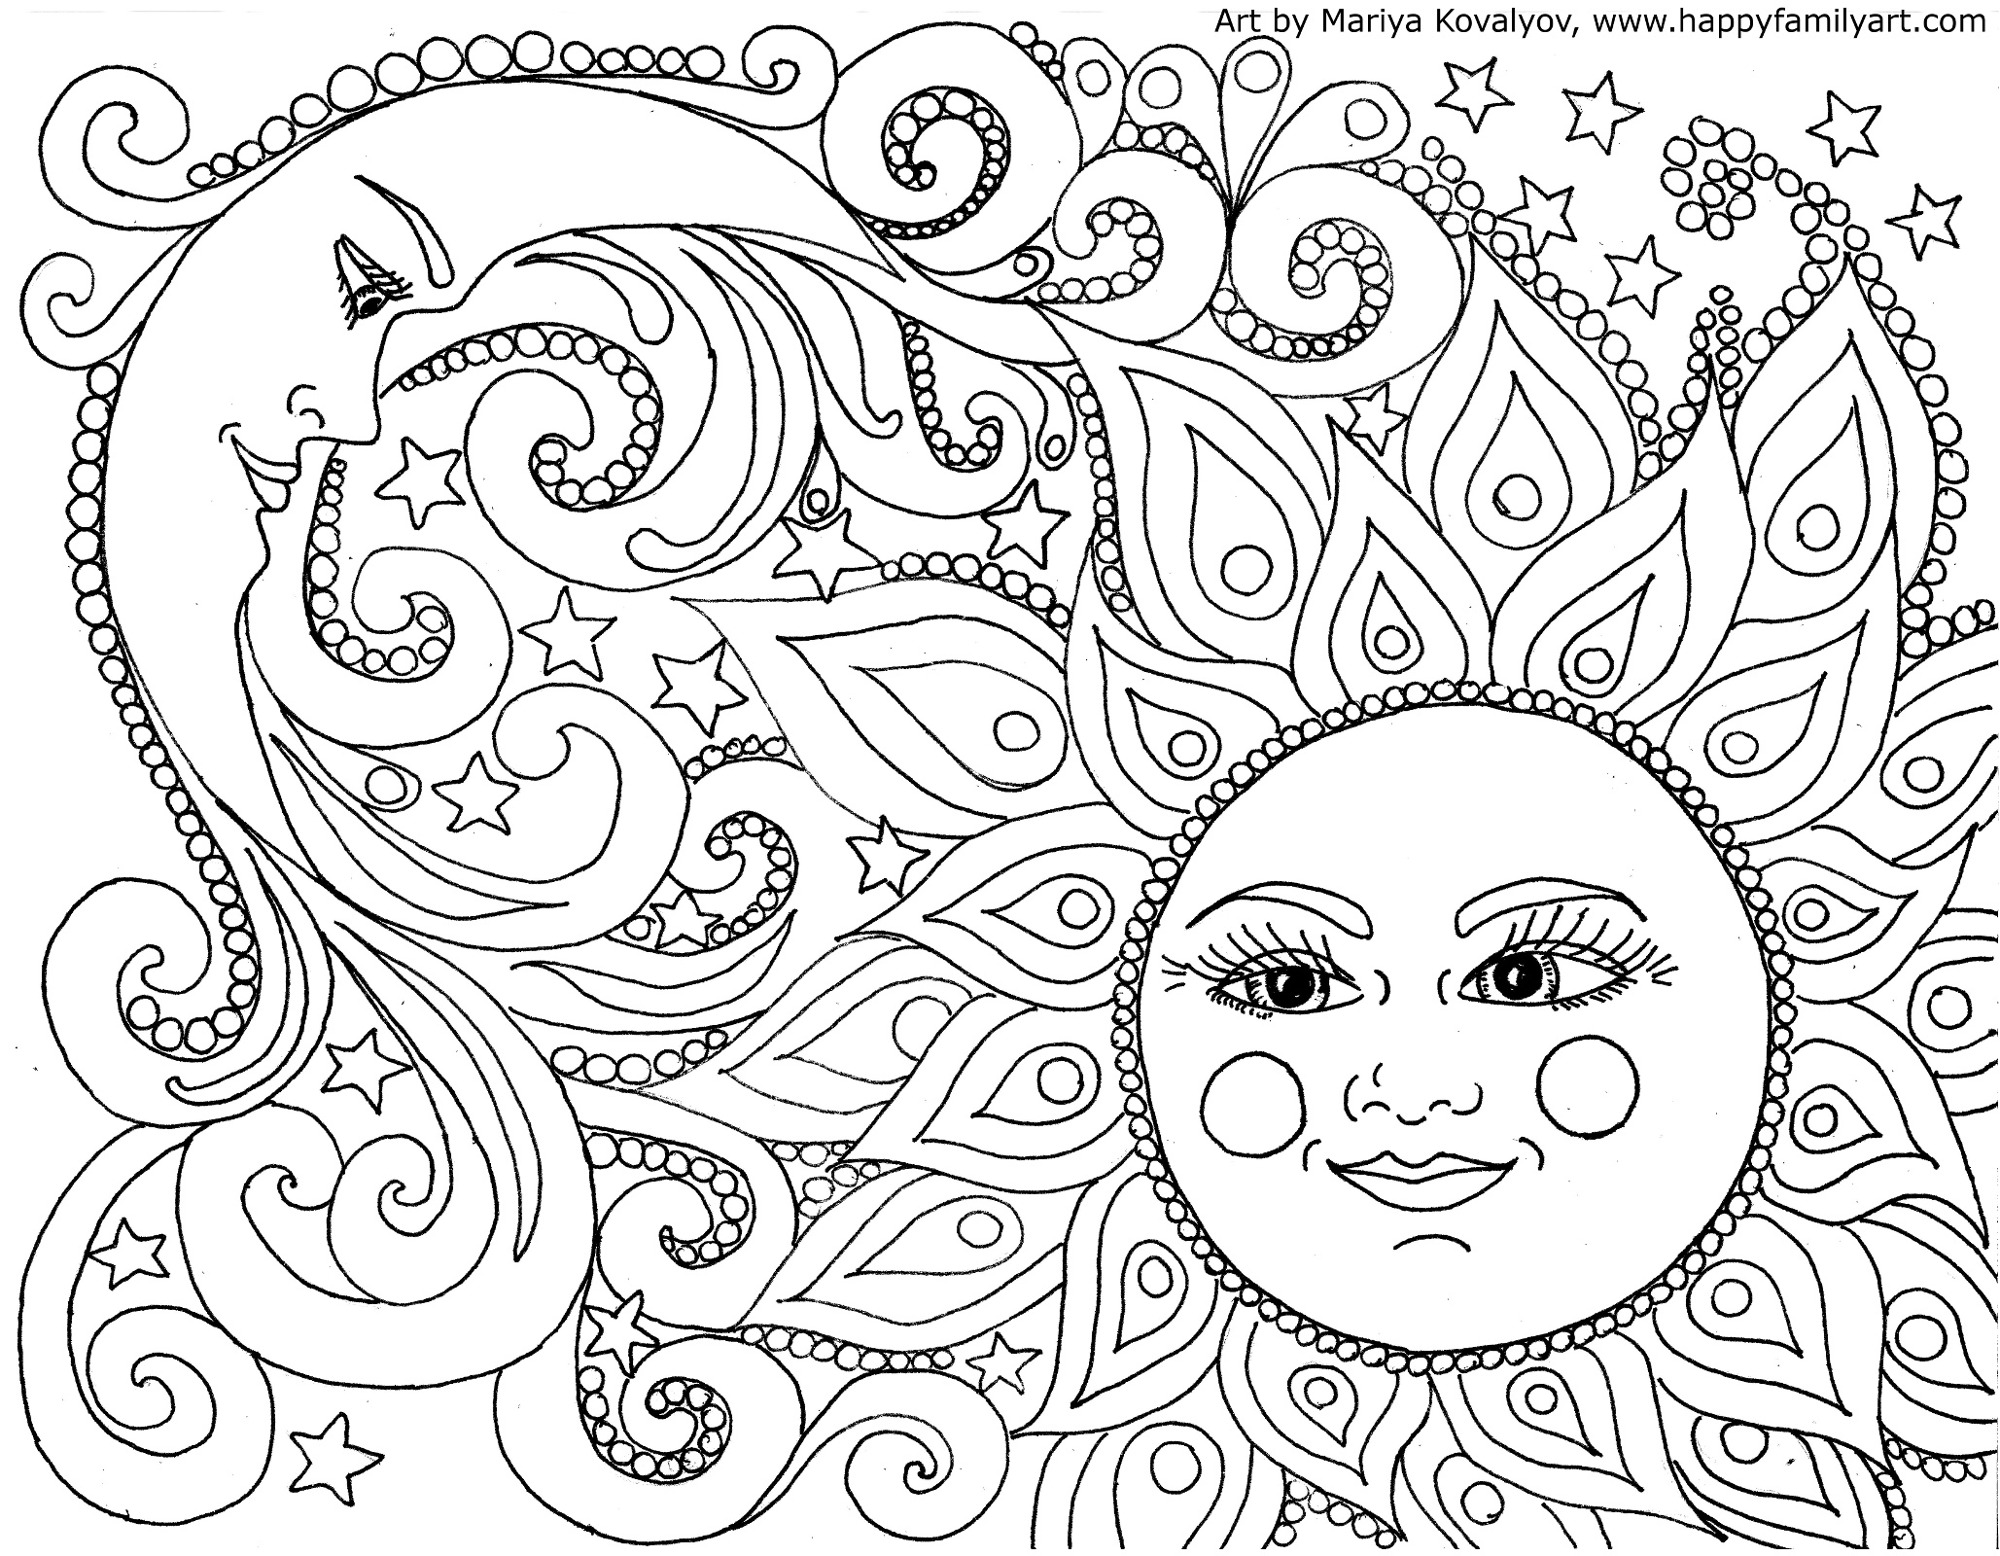 happy family art original and fun coloring pages - Color Pages